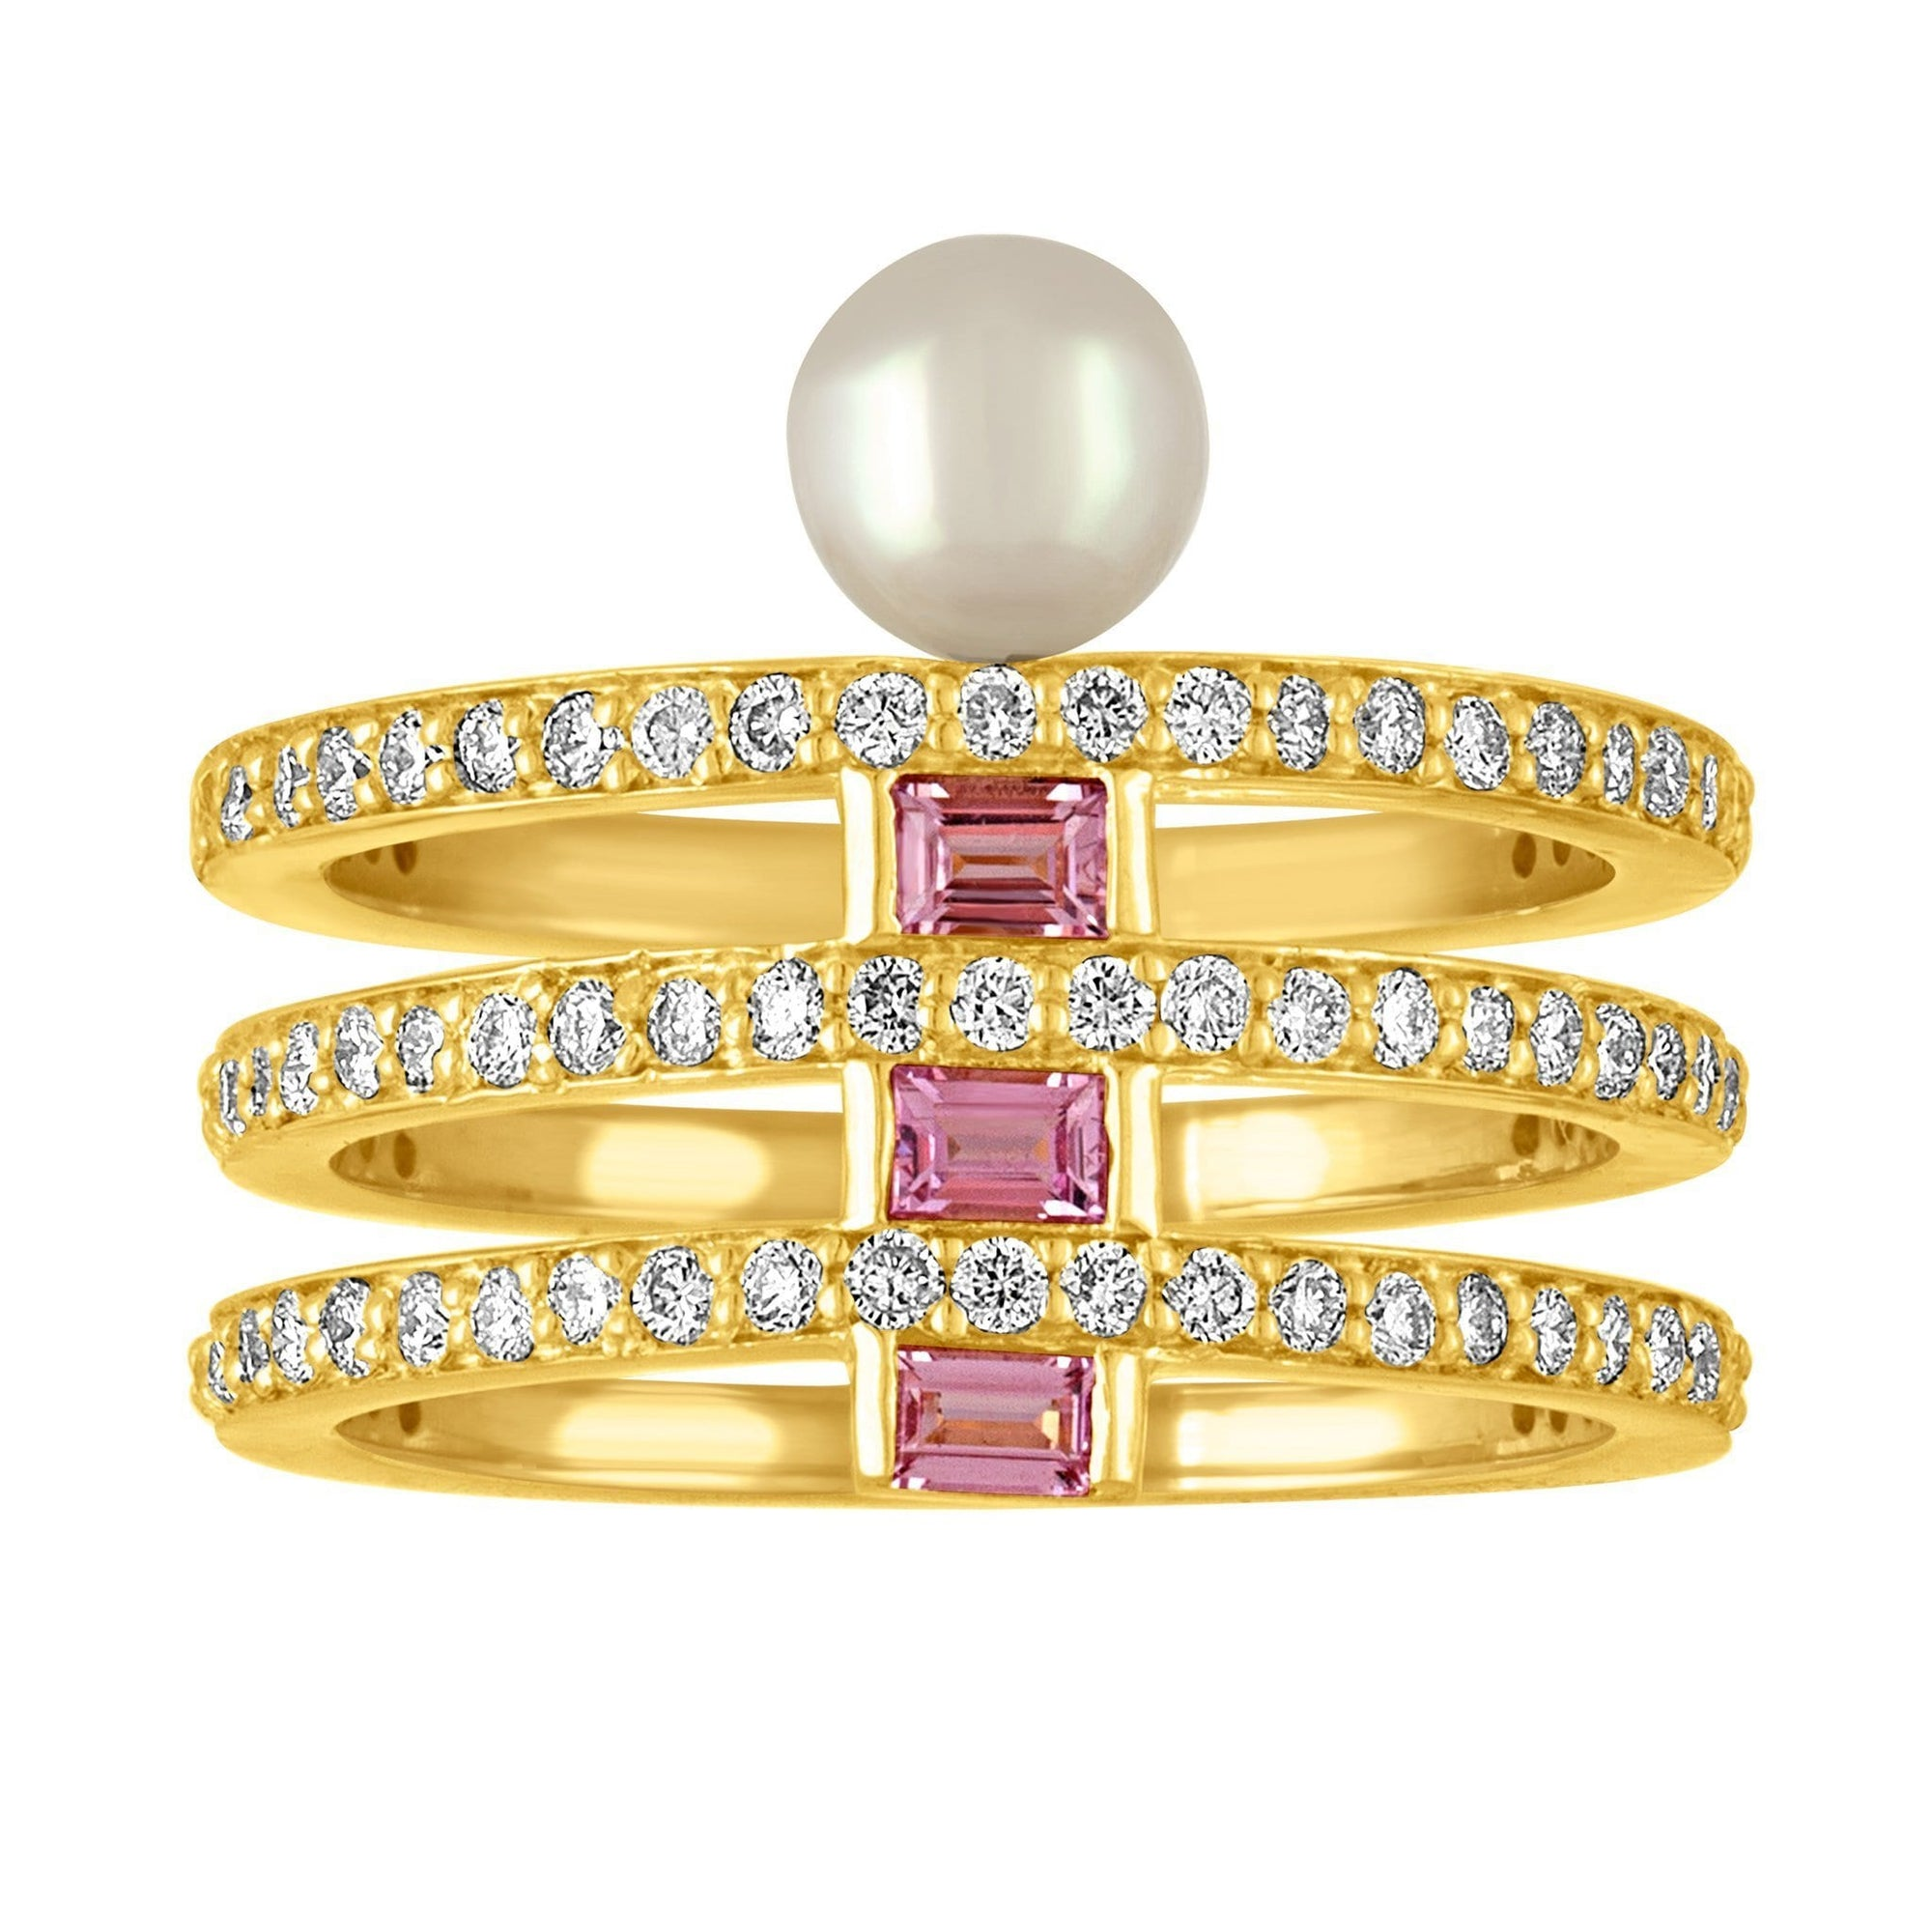 Claire Ring: 18k Gold, Diamonds, Pink Sapphire Baguettes, White Akoya Pearl